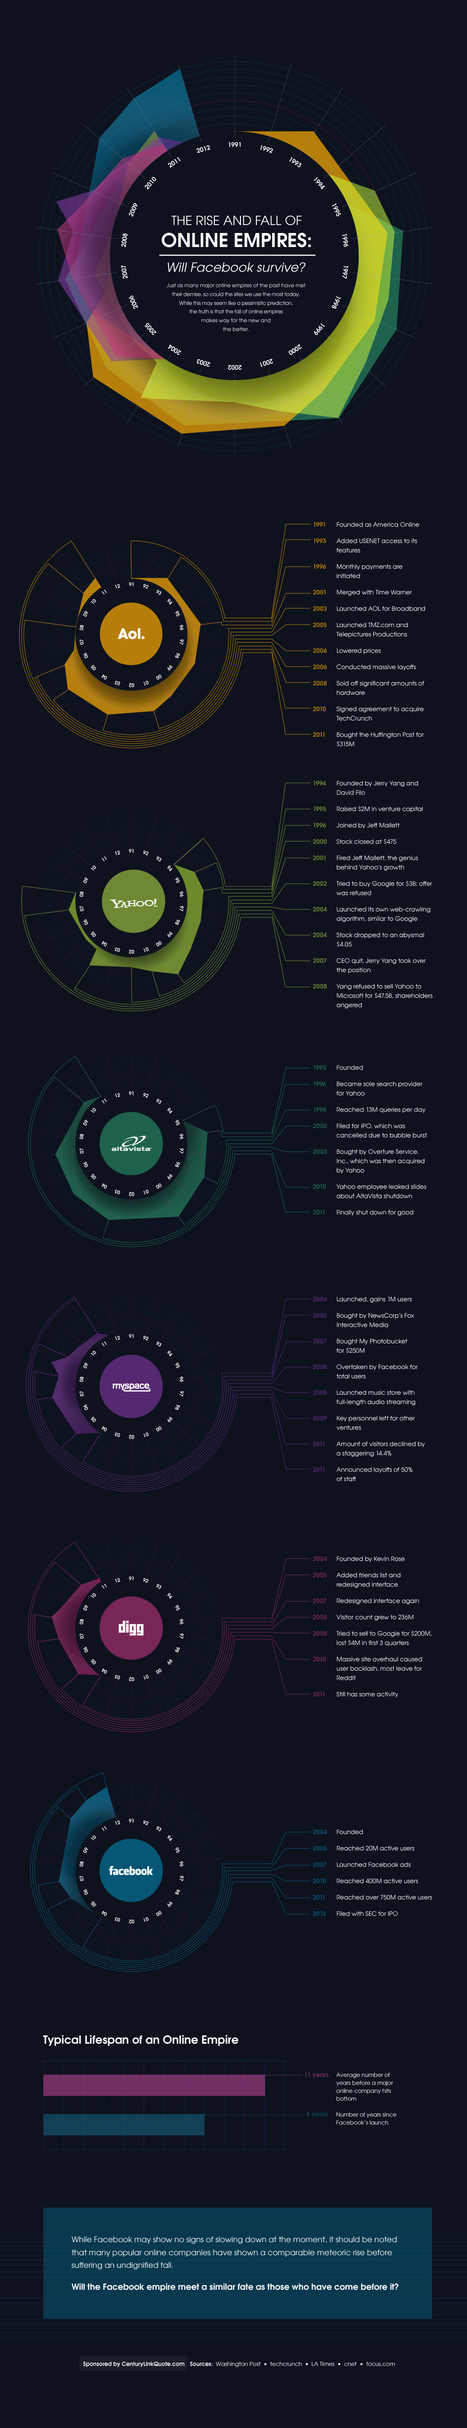 The Rise and Fall of Online Empires | Infographic | e-Leadership | Scoop.it